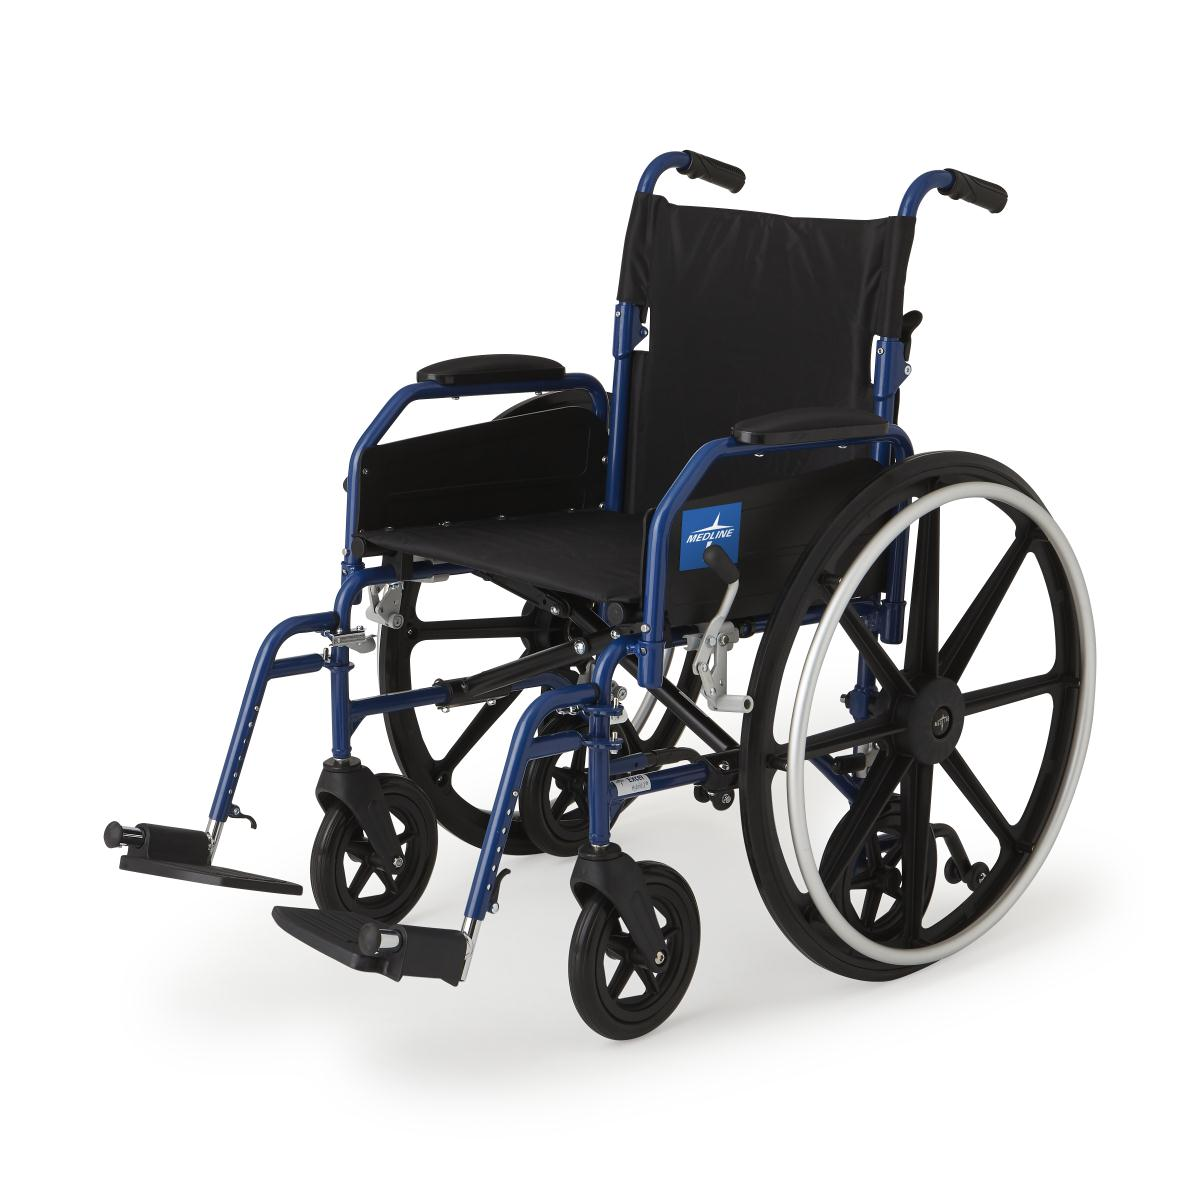 Combo Chair Ii: Medline Excel Hybrid 2 Transport Chair Wheelchair Combo At